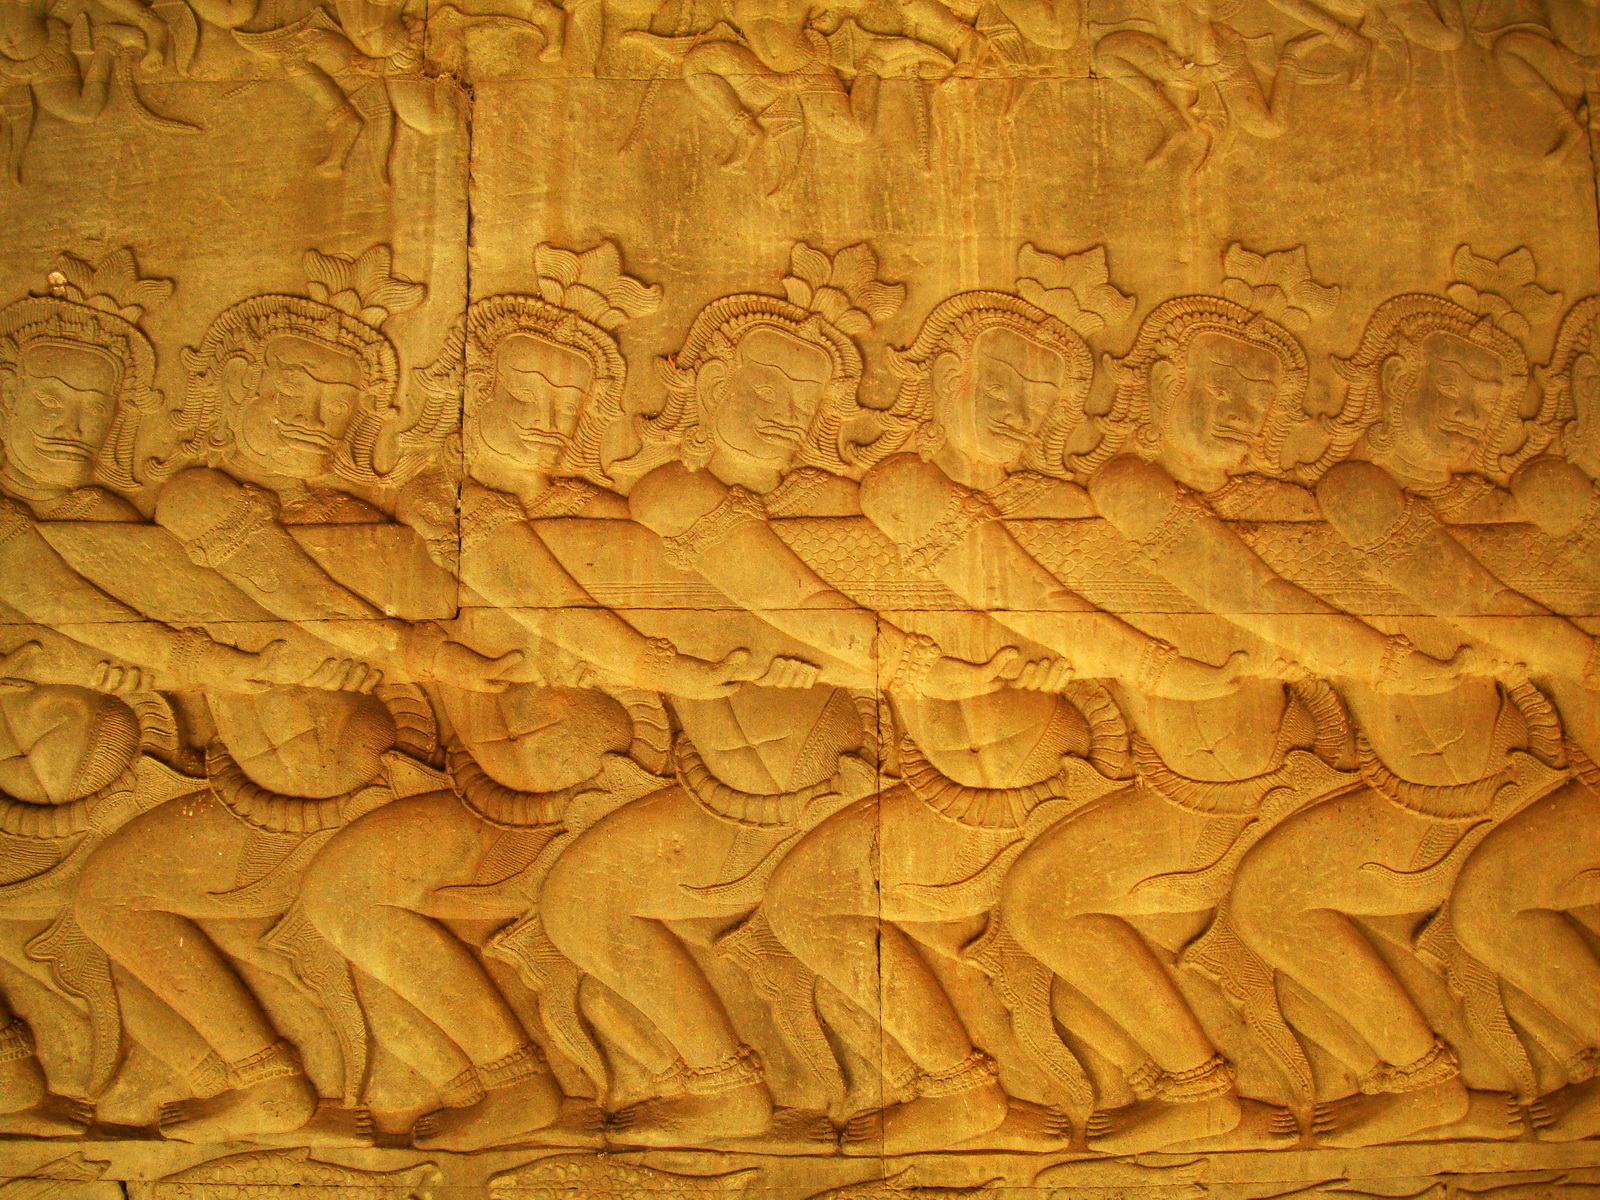 Angkor Wat Bas relief E Gallery S Wing Churning of the sea of milk 07